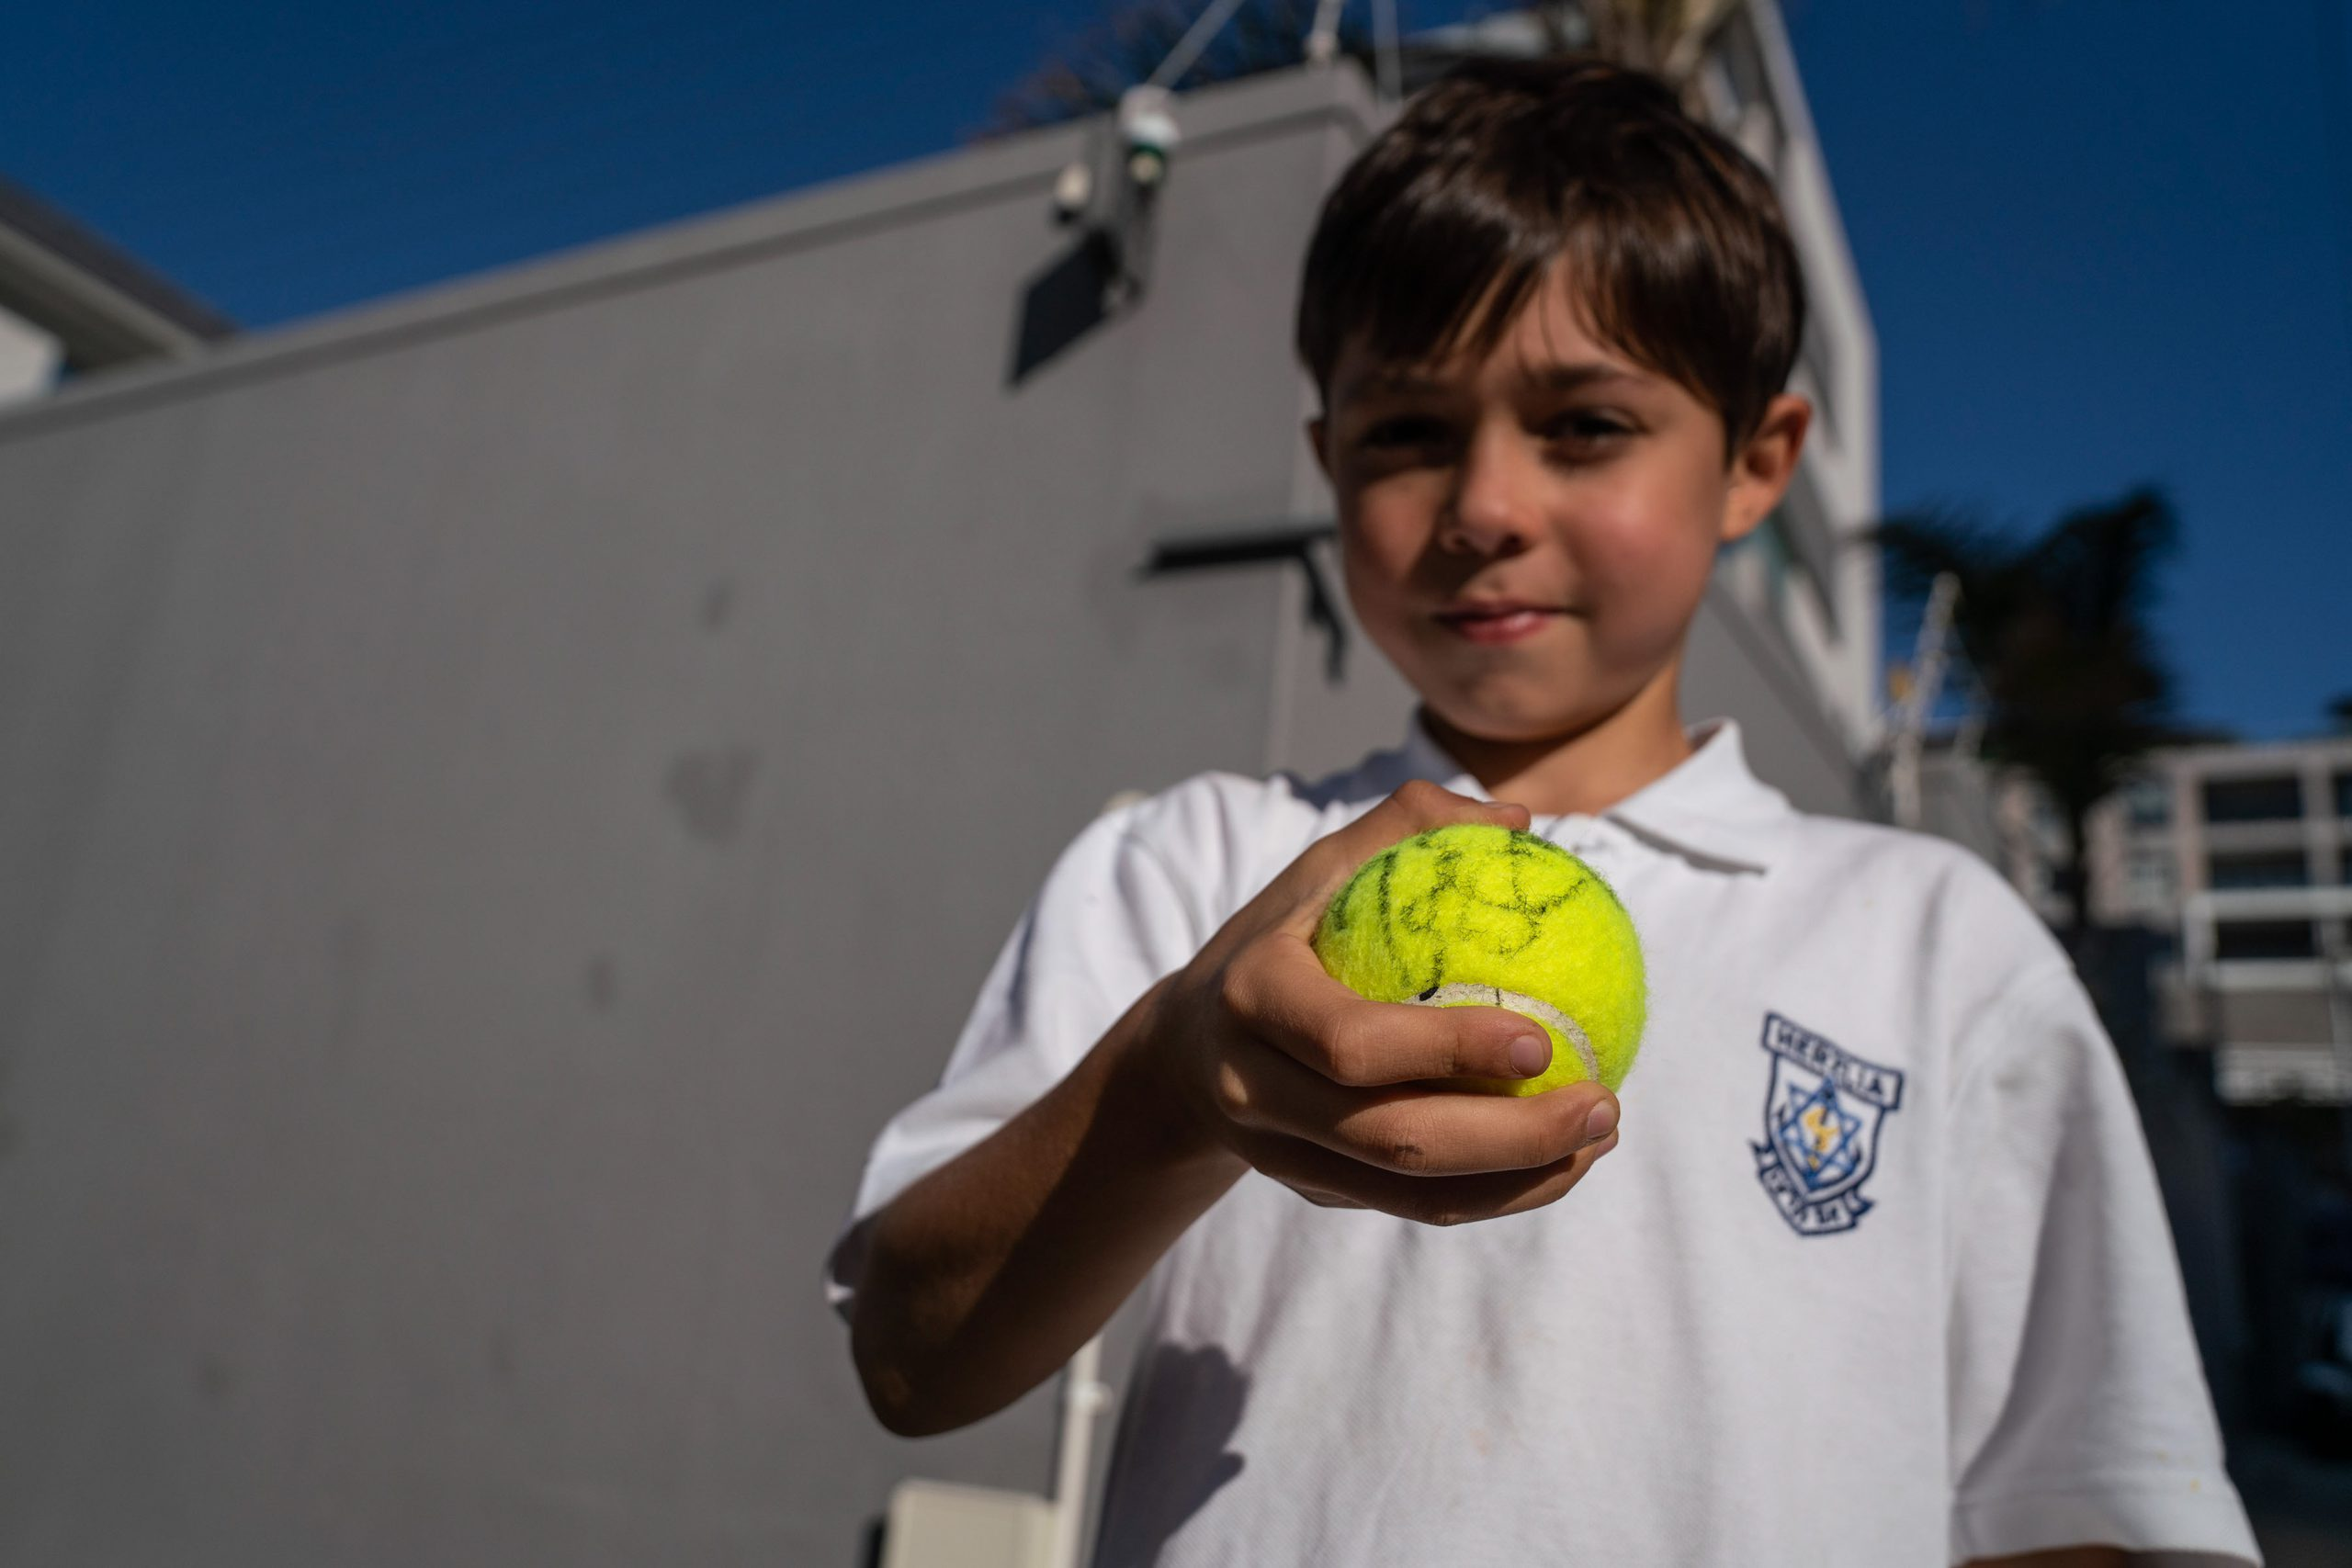 6 February 2020: Tennis fan Jonah Khan shows off a ball signed by Roger Federer after the legend visited the Anthony Harris Tennis Academy in Sea Point.